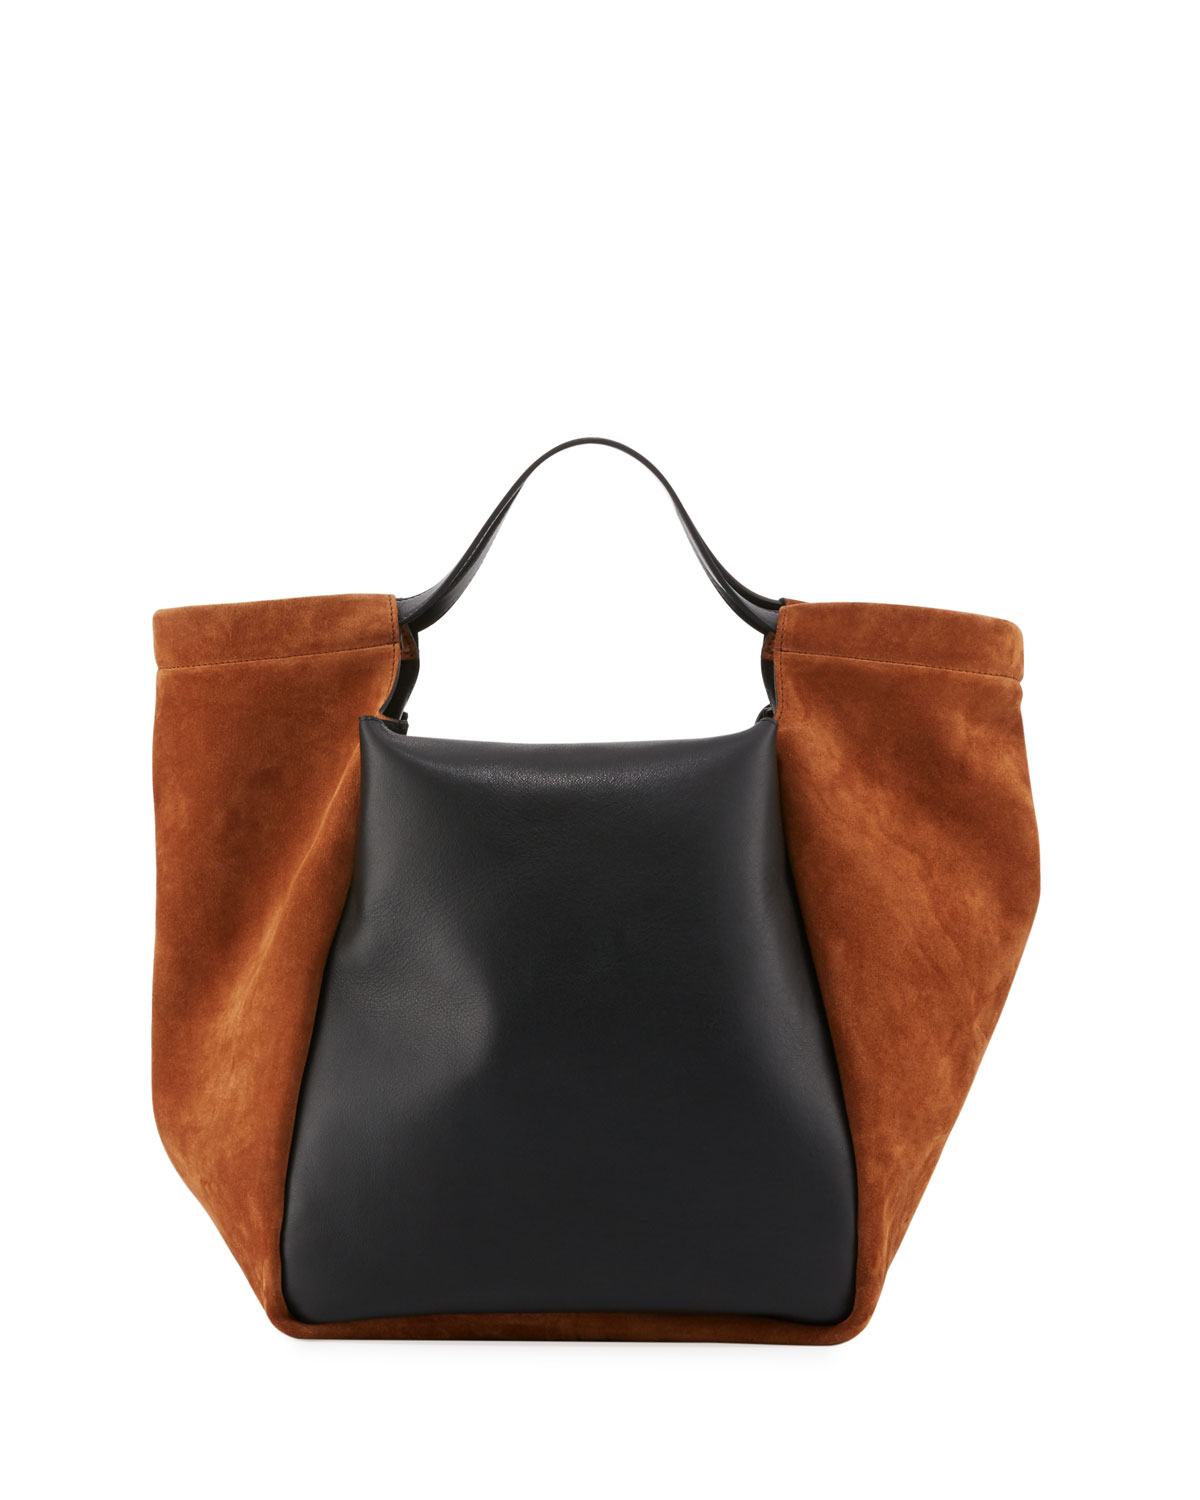 Real Smooth Leather Suede Tote Bag Brown Black